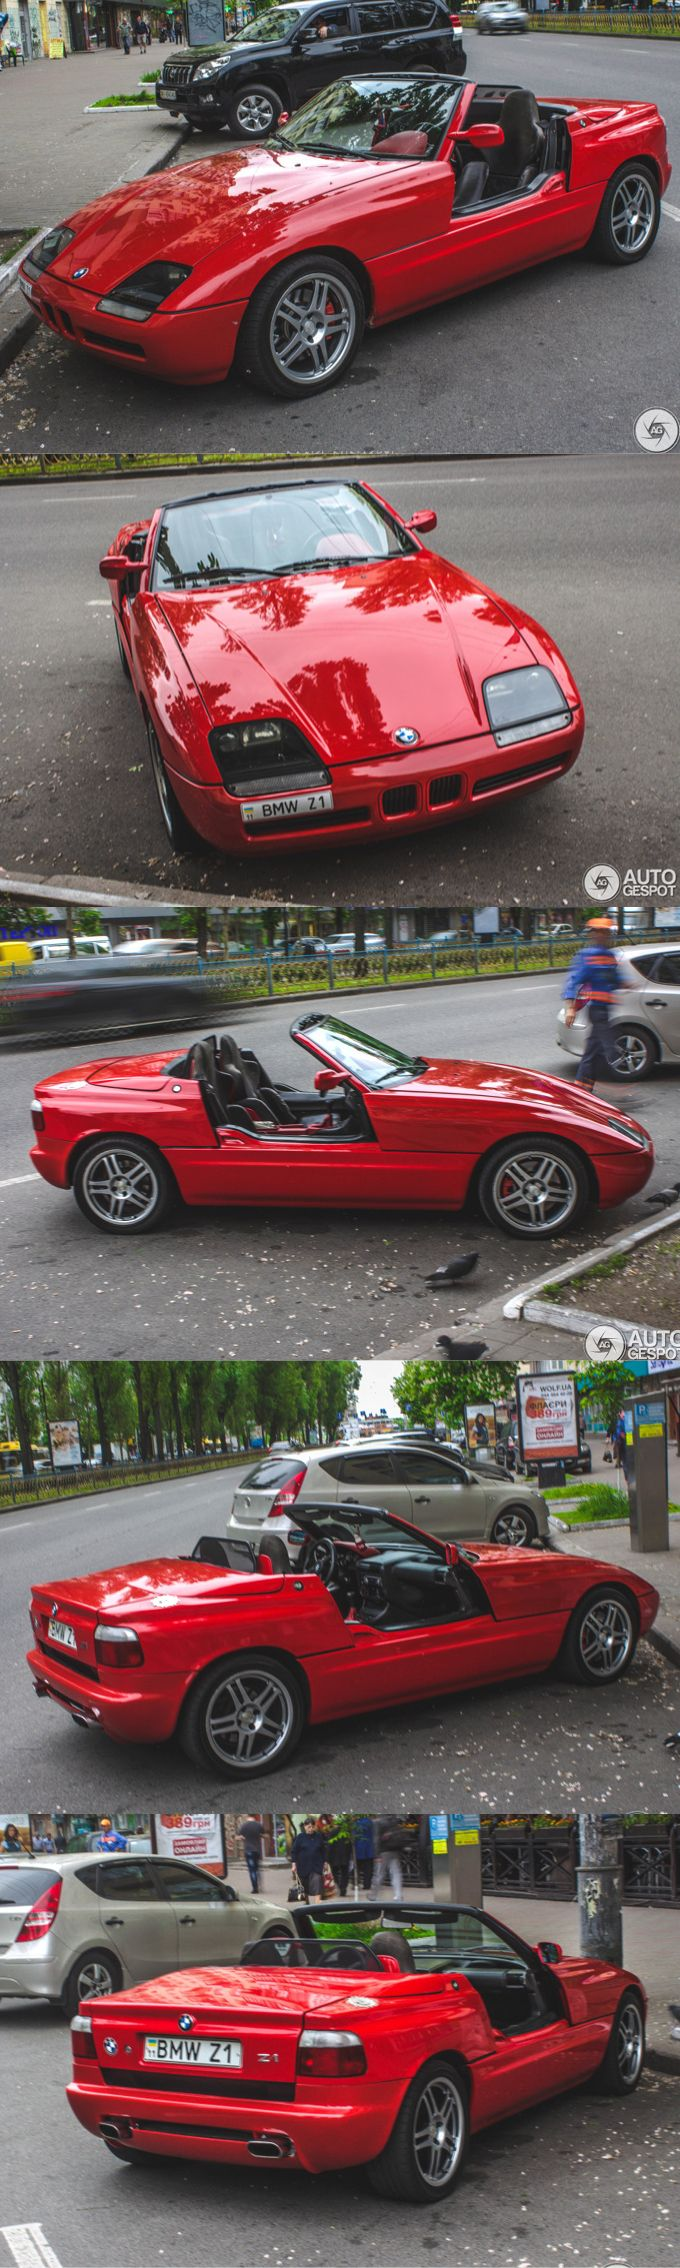 1989 BMW Z1 / Harm Lagaay / Germany / red